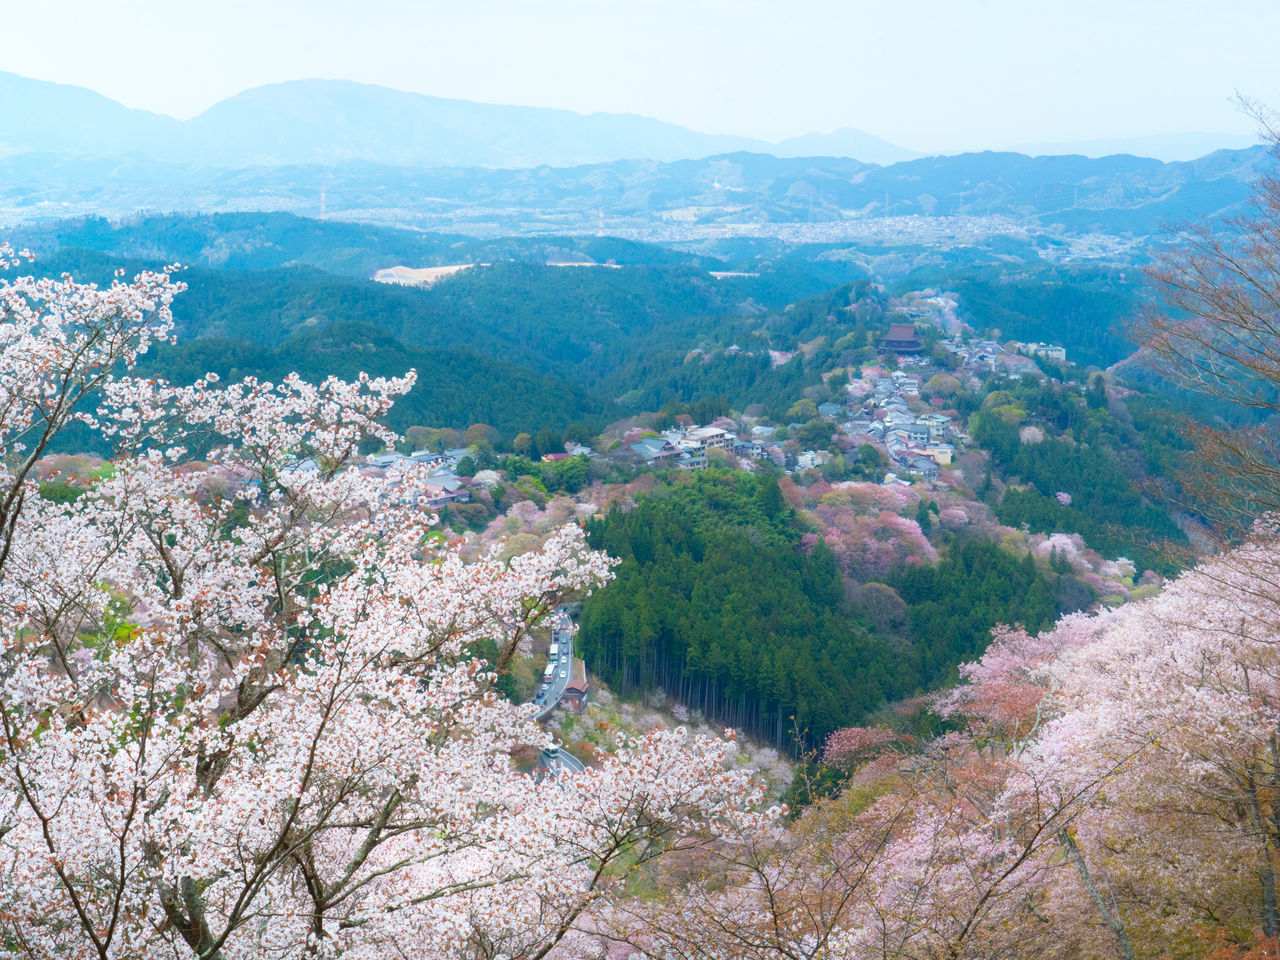 The view from the vicinity of Hanayagura Observation Deck, 600 meters above sea level.